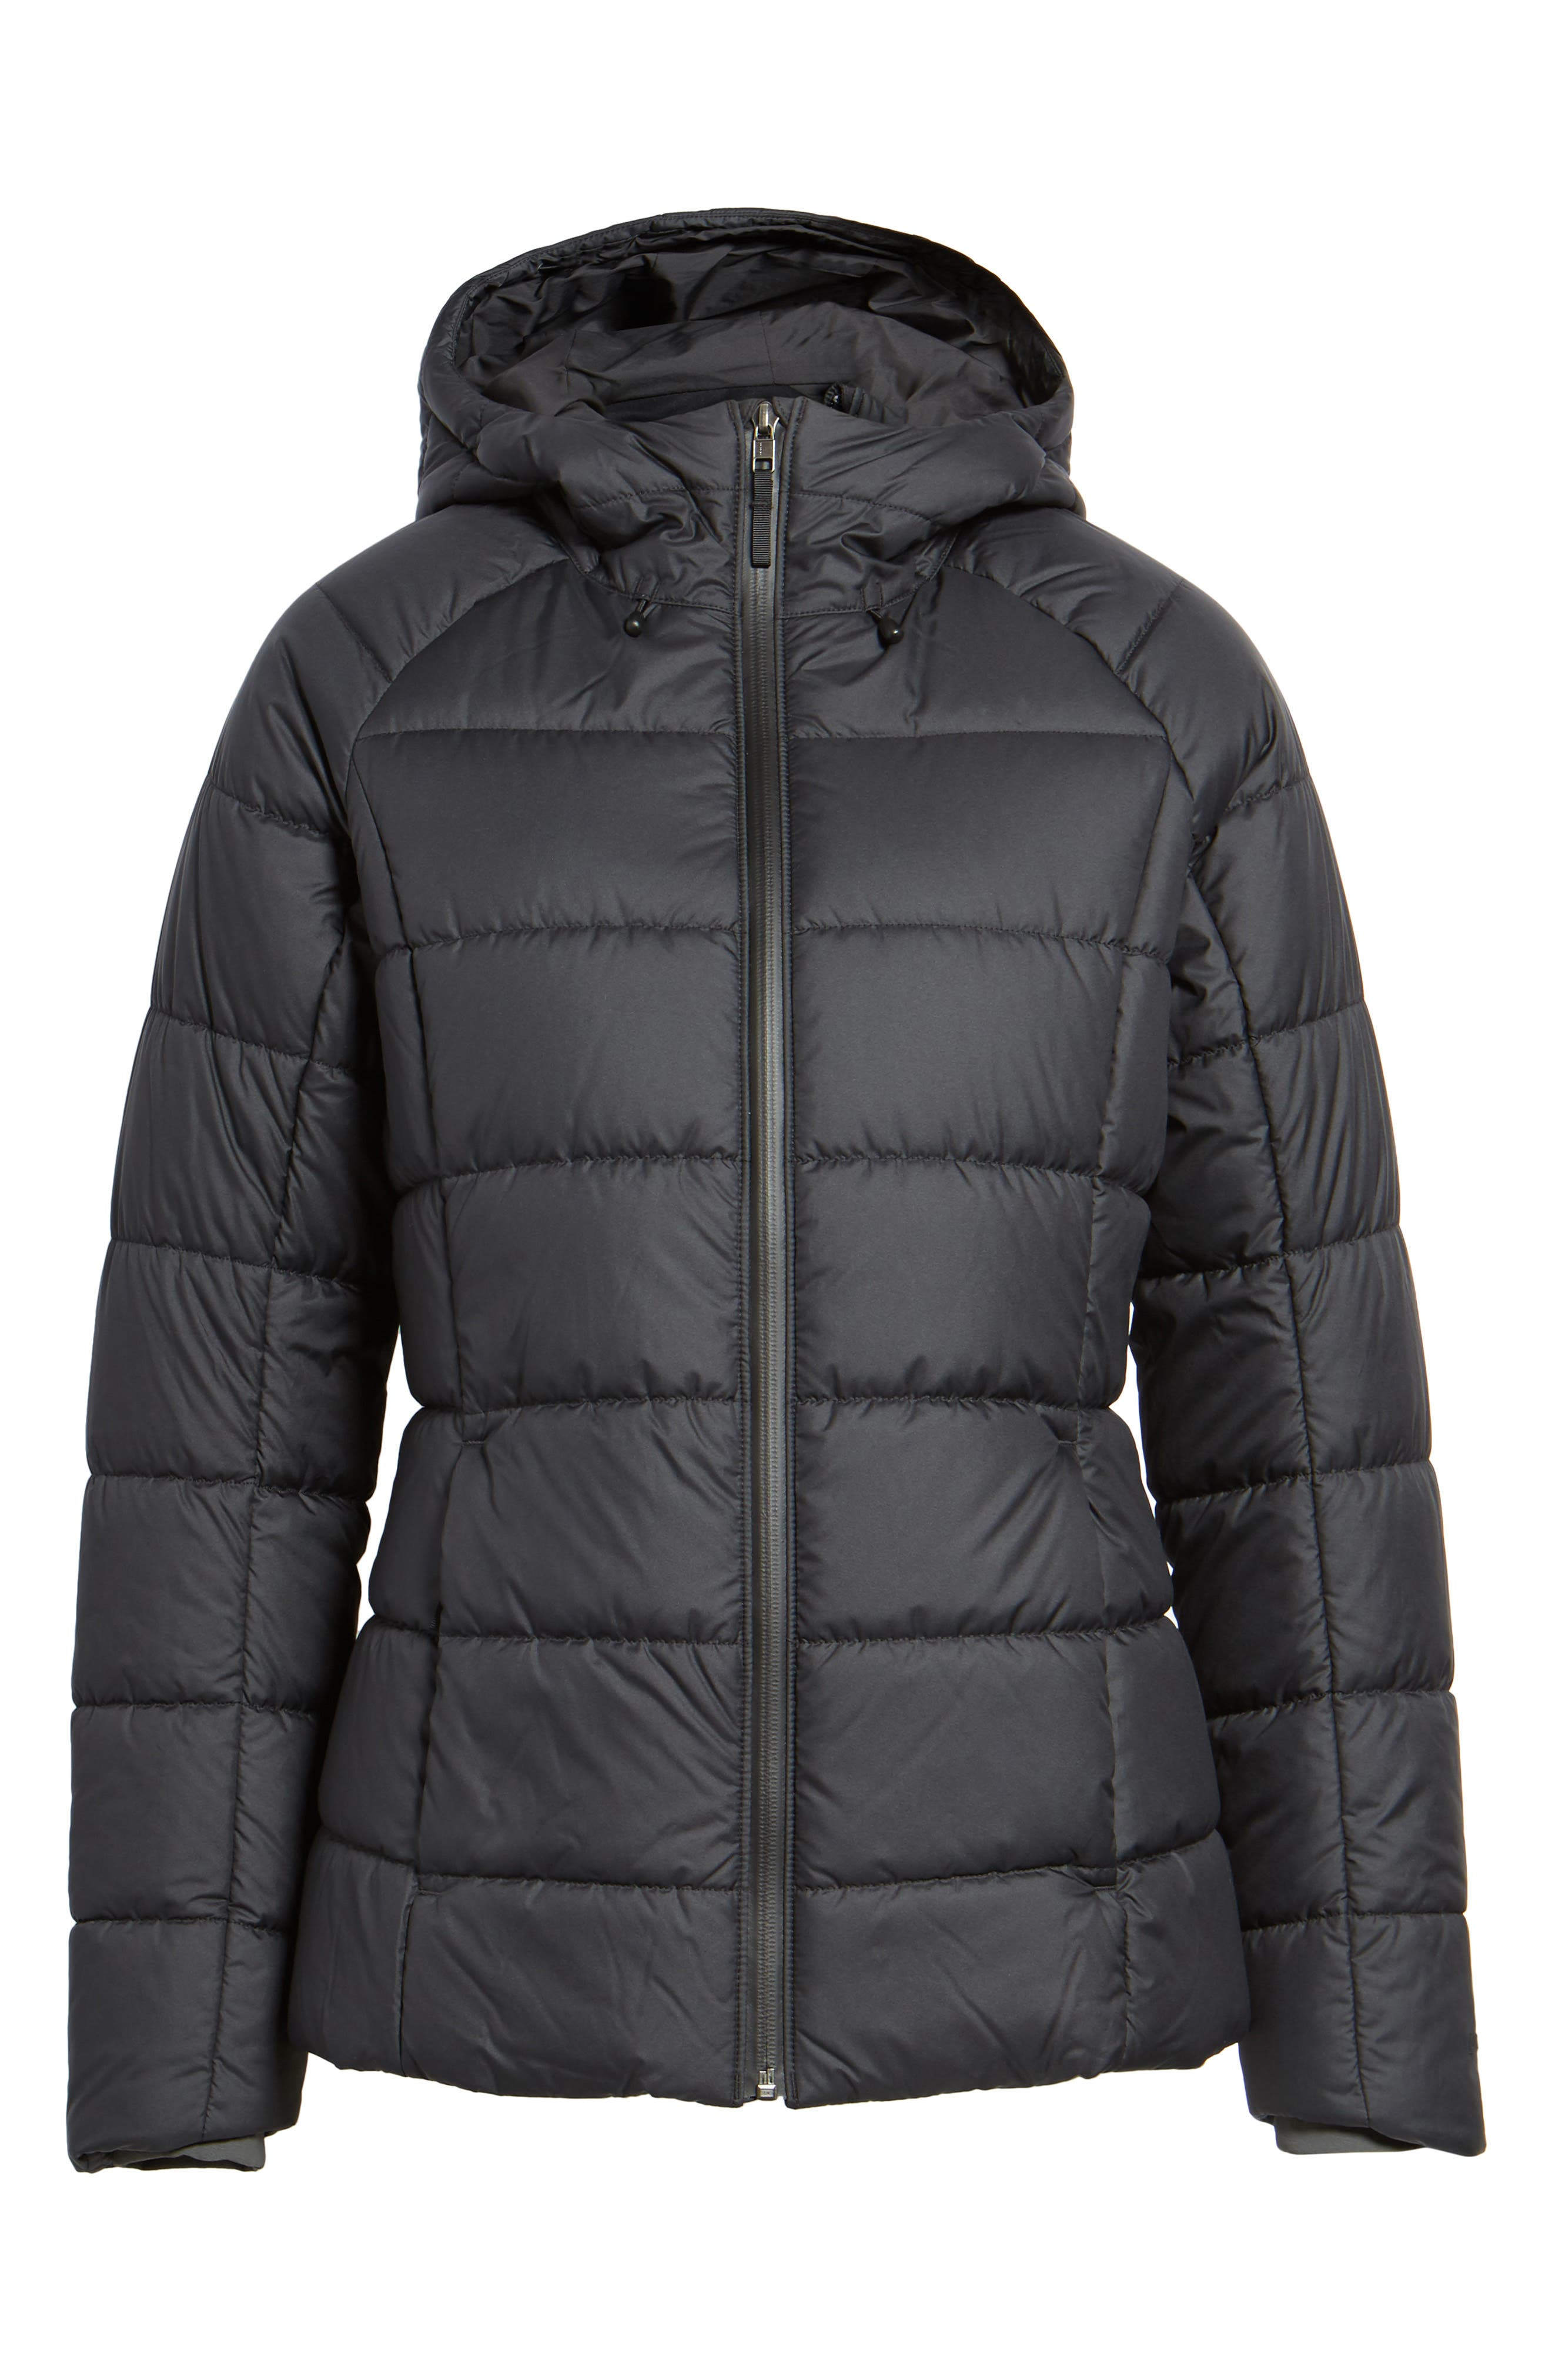 Transitional HyperDAS<sup>™</sup> Insulated Jacket,                             Alternate thumbnail 6, color,                             001